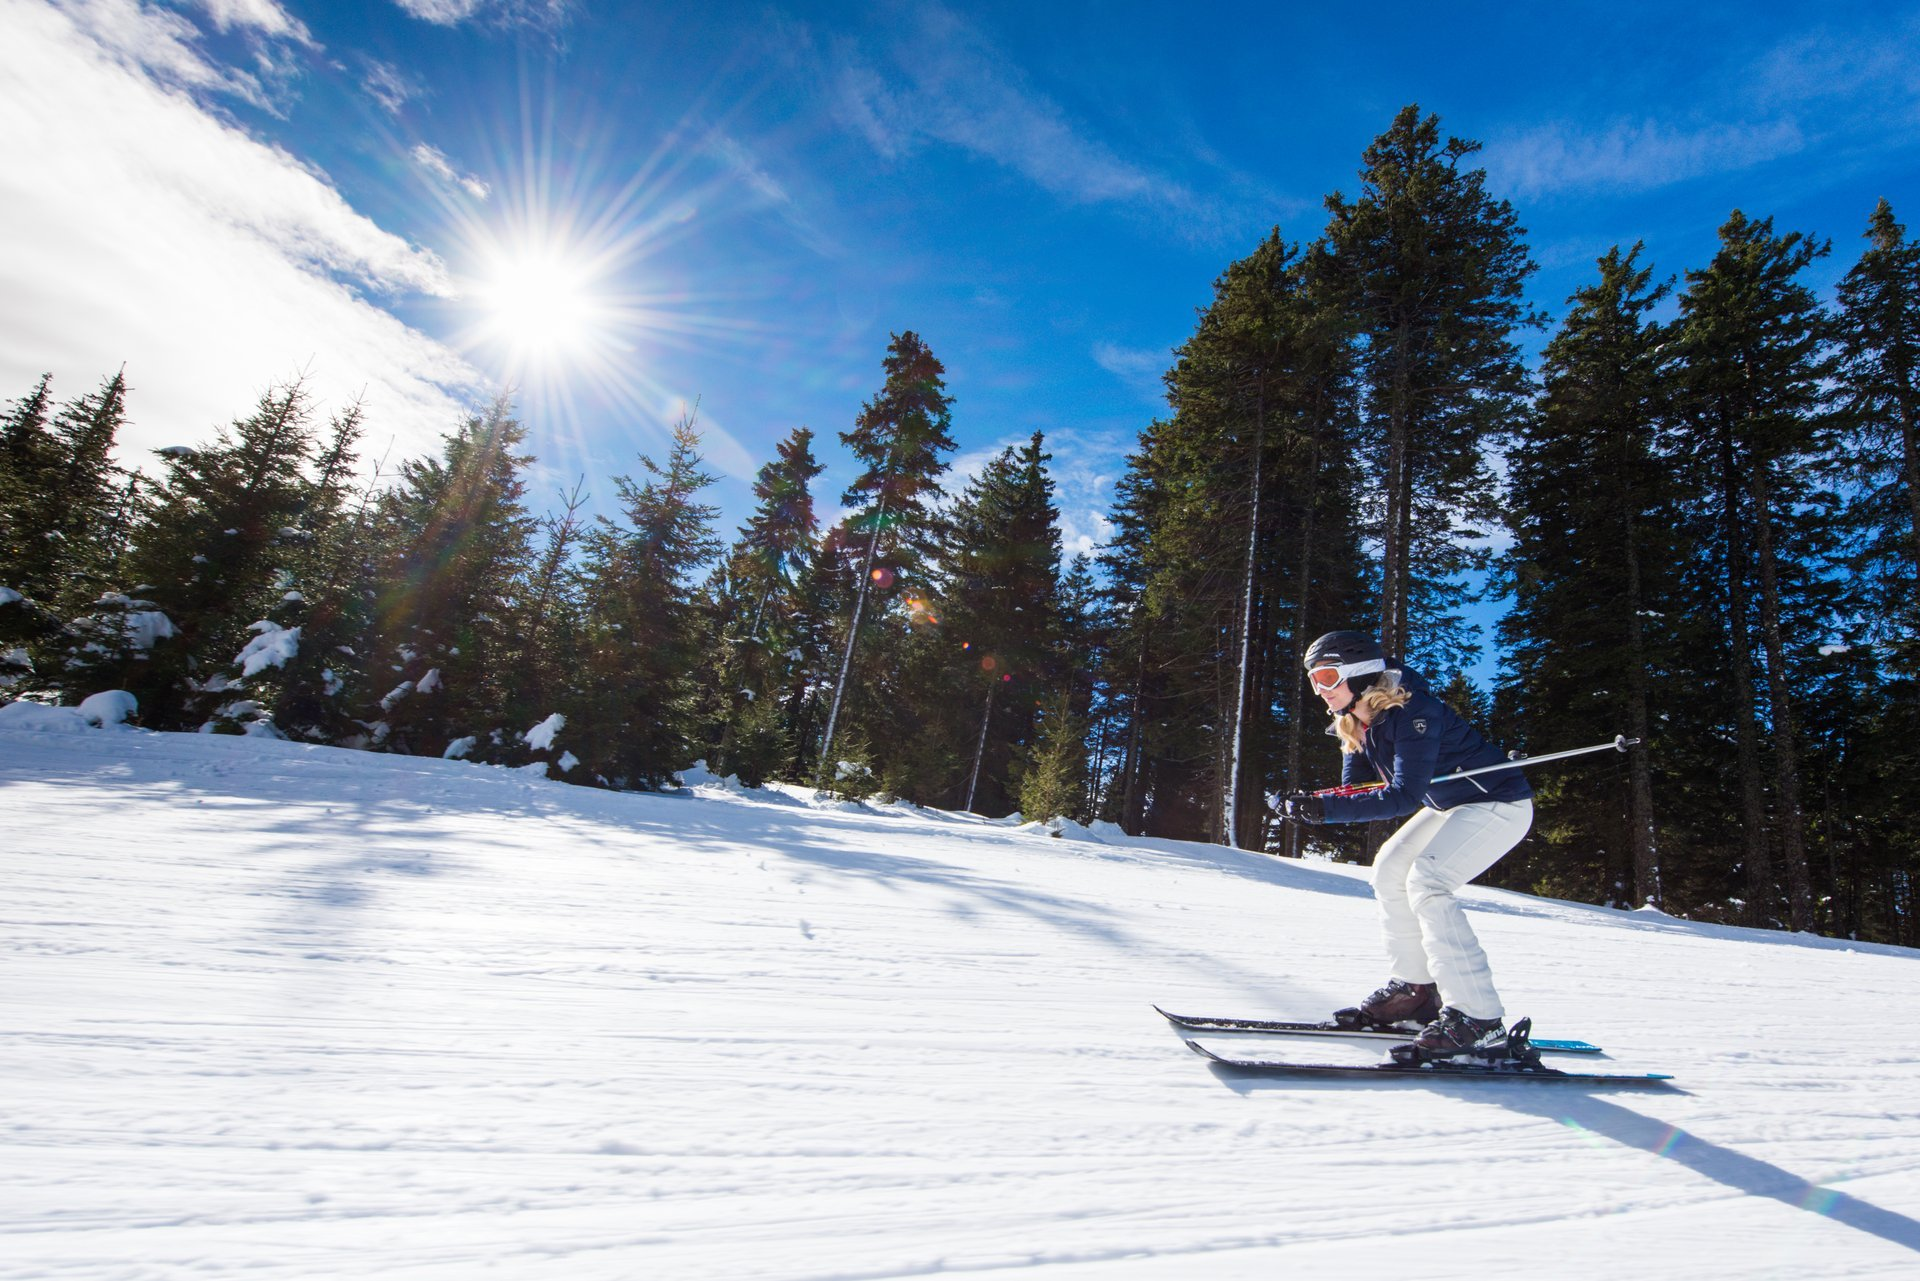 Skiing and Snowboarding in Slovenia 2020 - Best Time